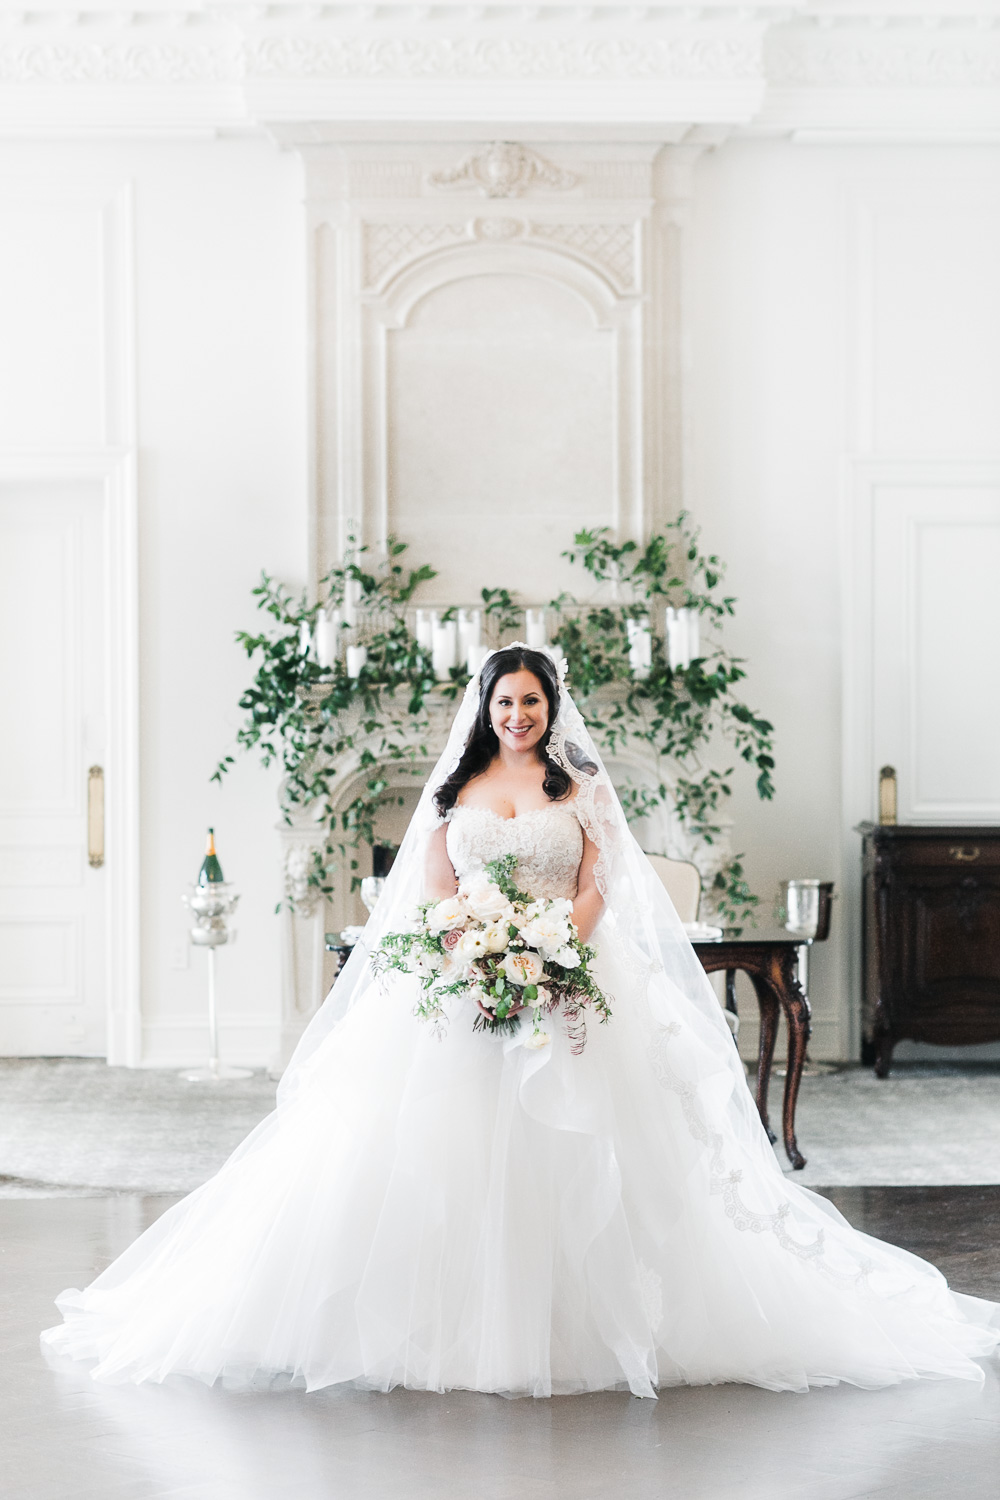 Bride at her elegant Park Chateau Wedding in New Jersey.  Blushed Design: Wedding Invitations and Fine Art Portraits